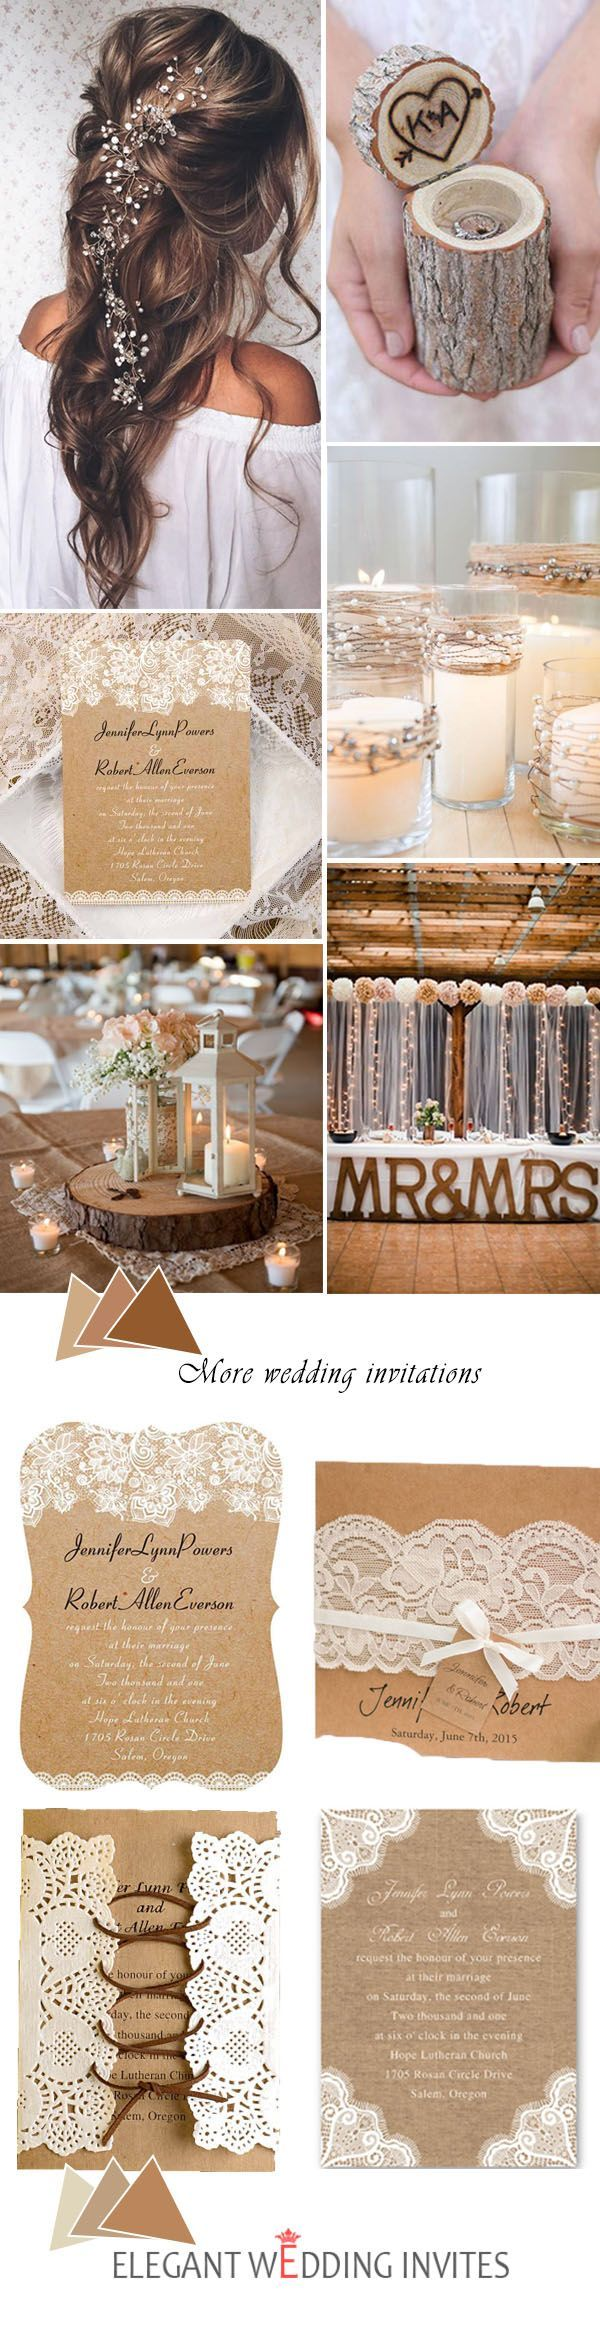 country wedding ideas with vintage lace and burlap